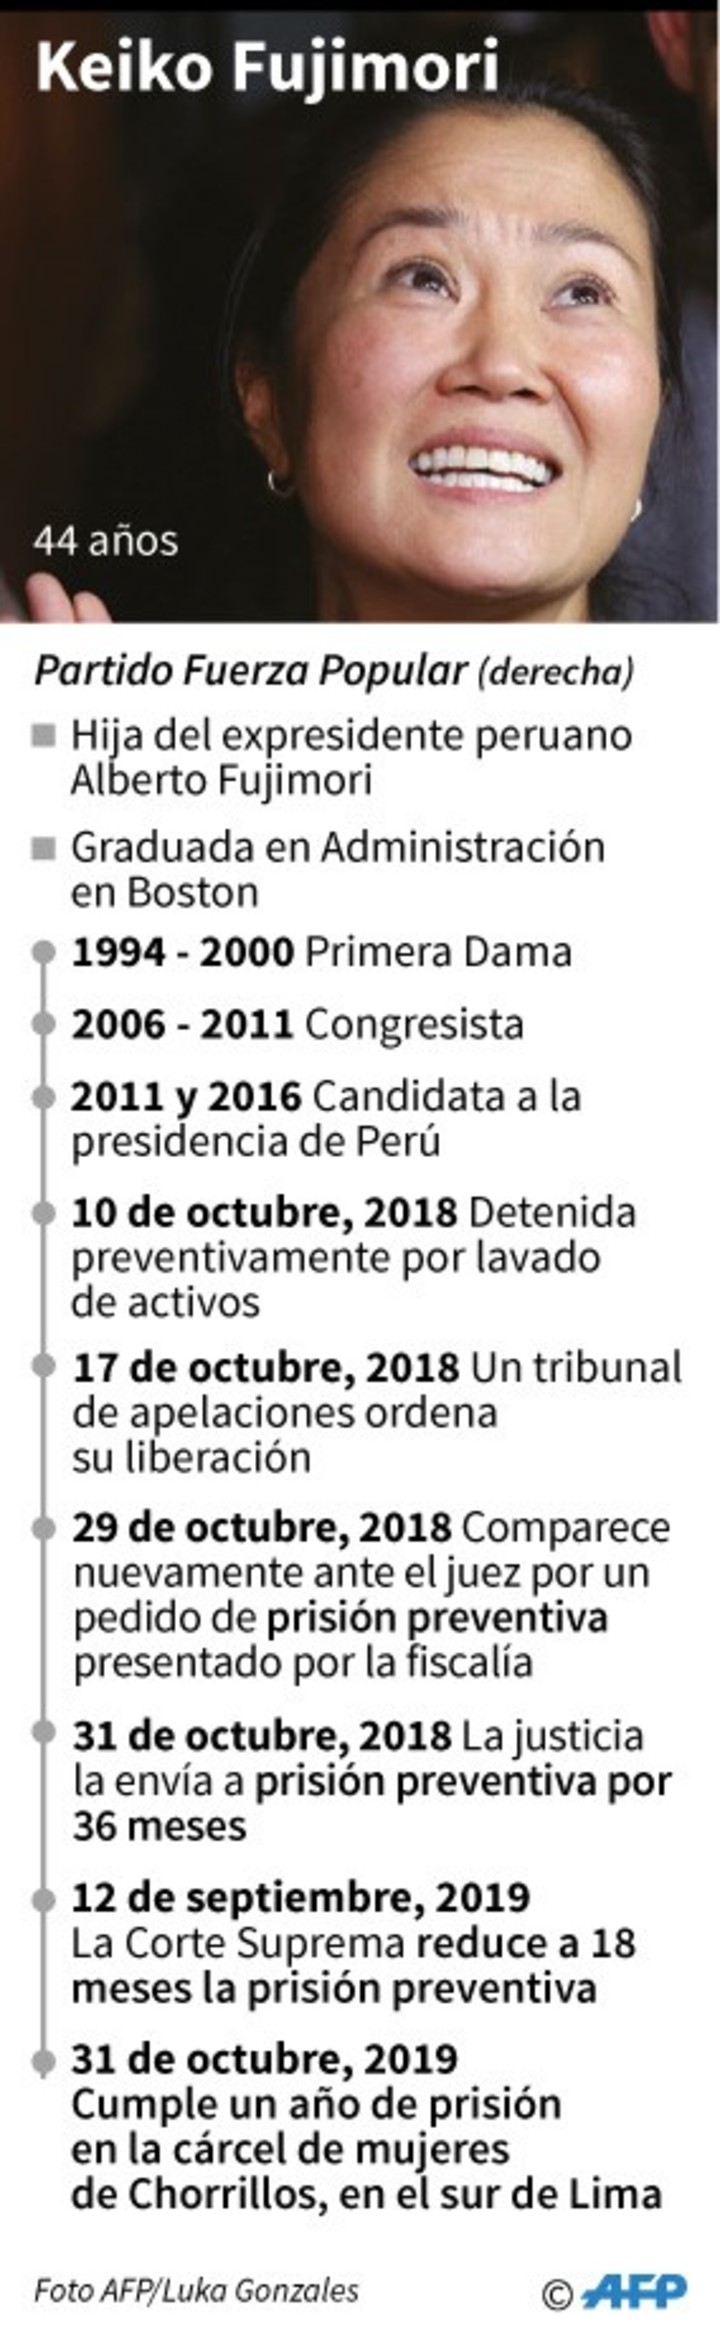 Profile of Keiko Fujimori, the right-wing leader who seeks to reach the presidency of Peru.  / AFP